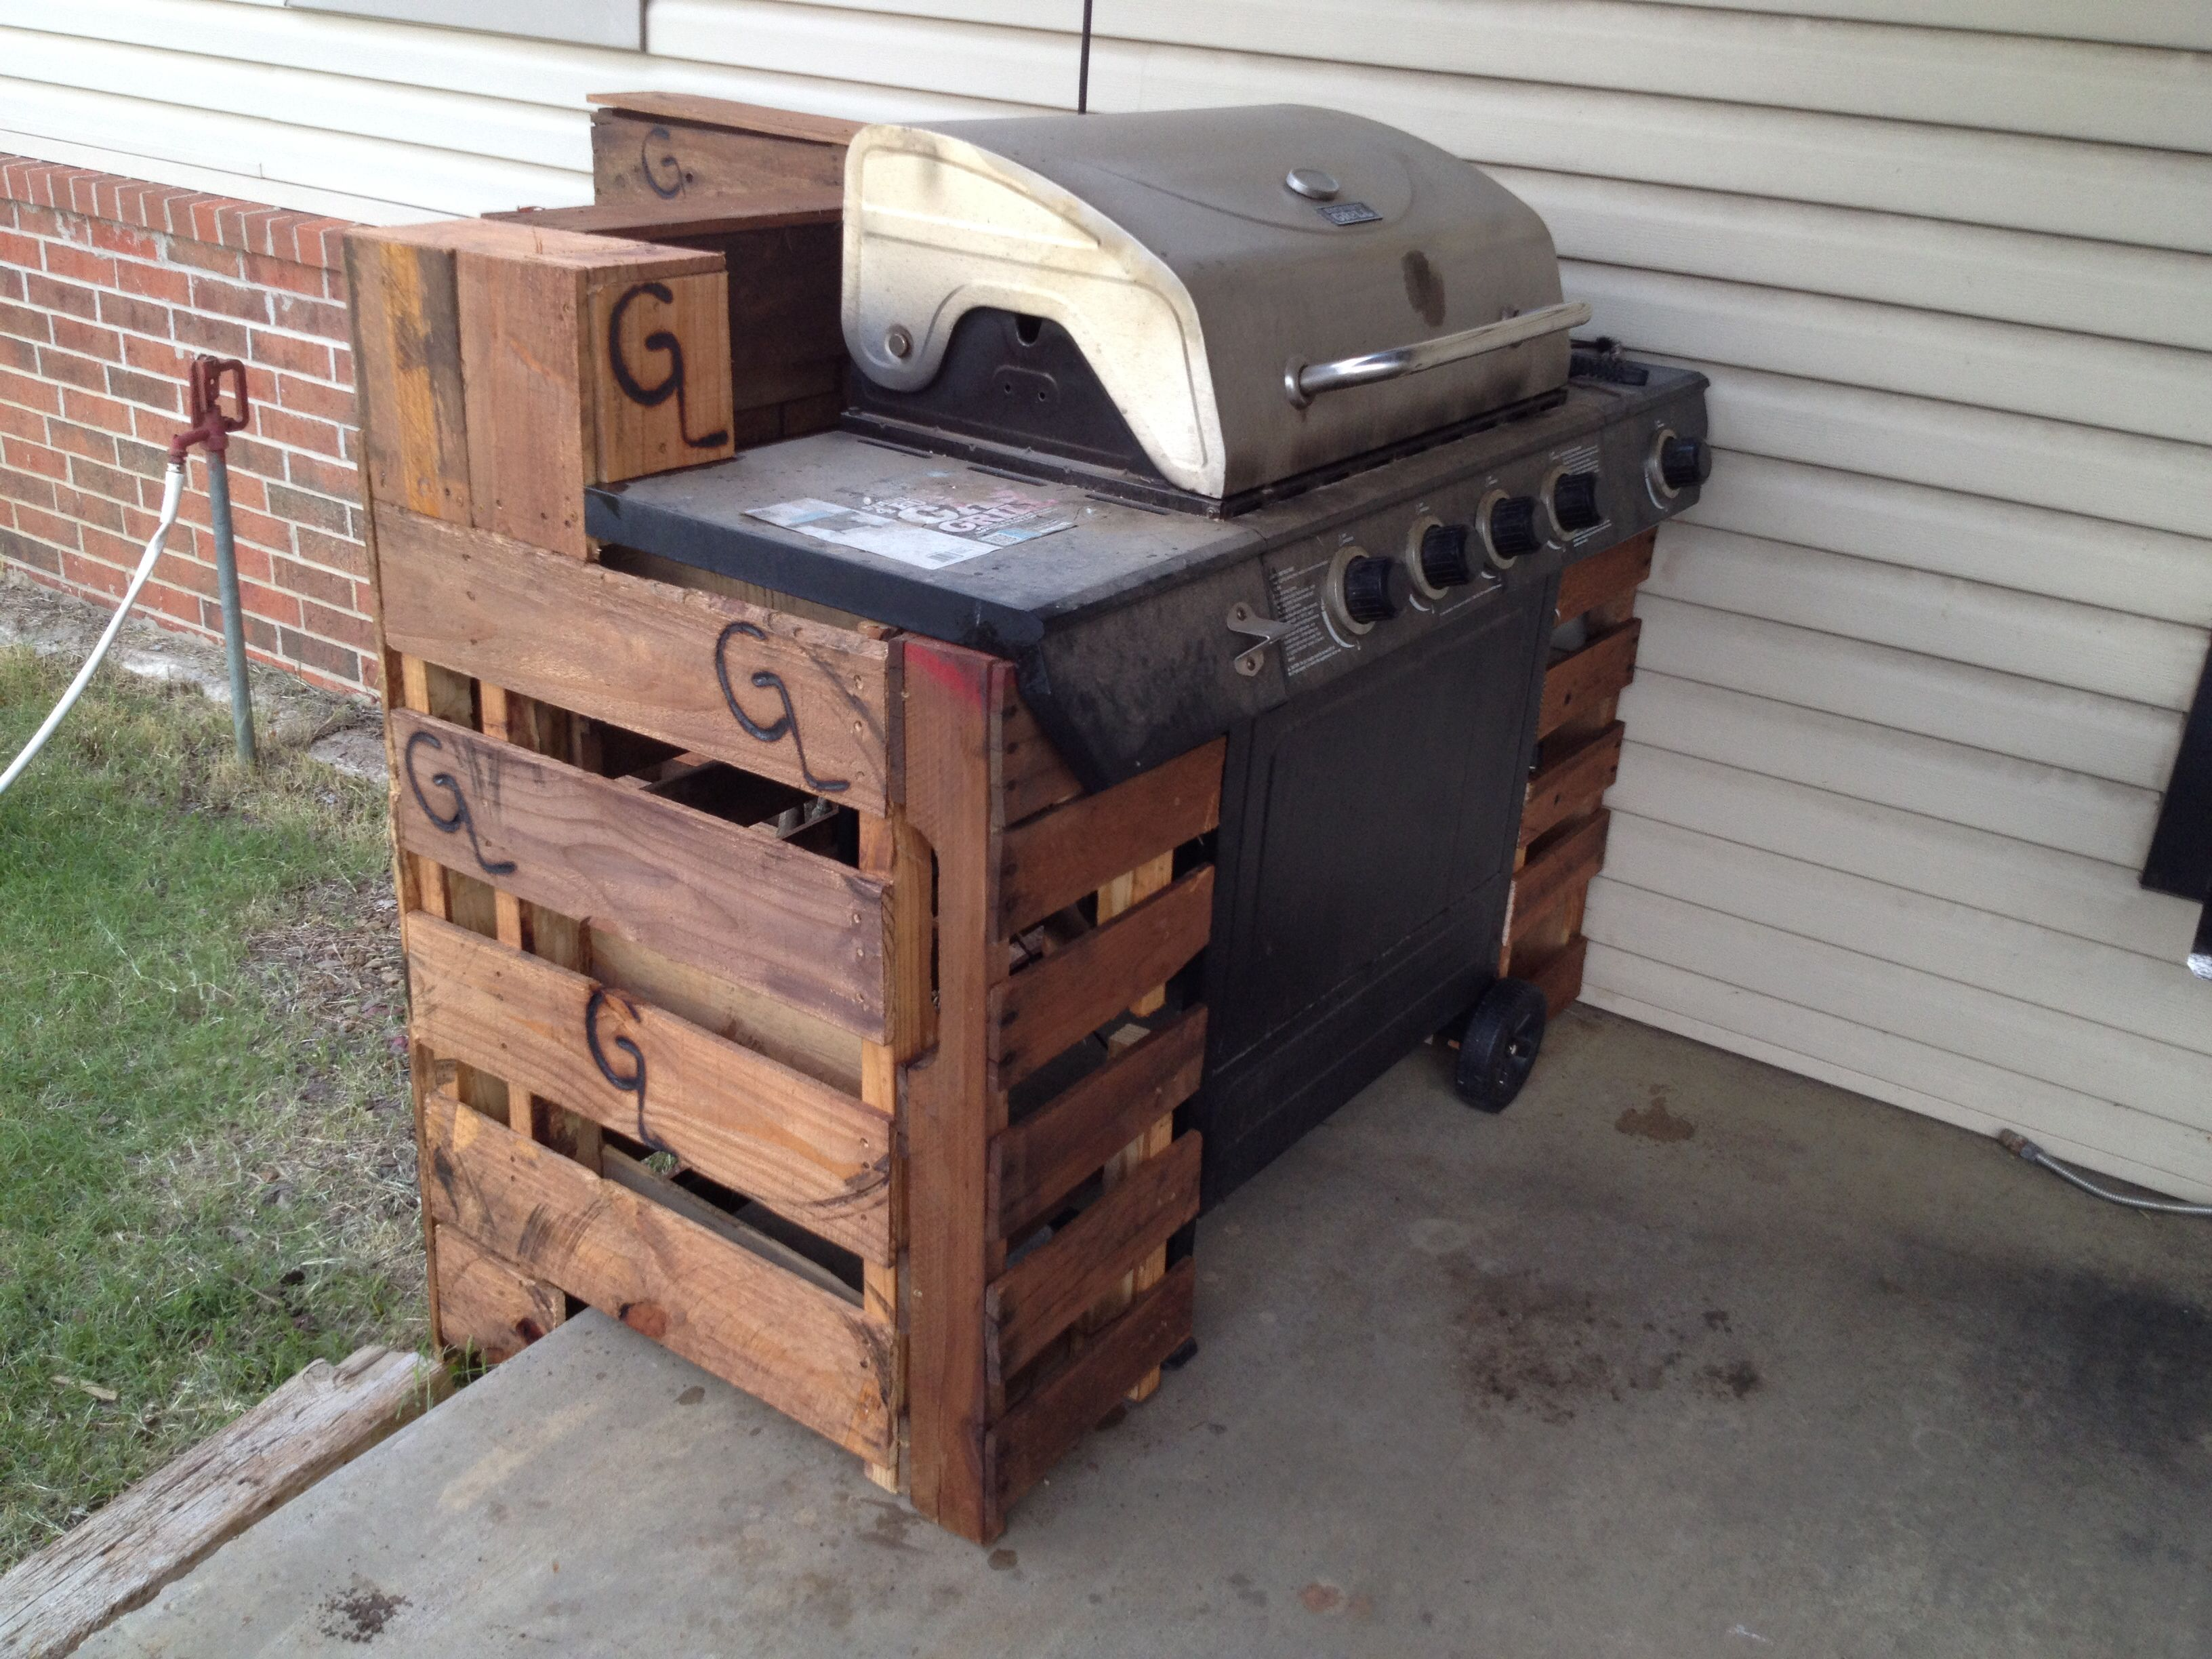 Pallet grill cover pallet furniture pinterest - Grill utensil storage ideas ...